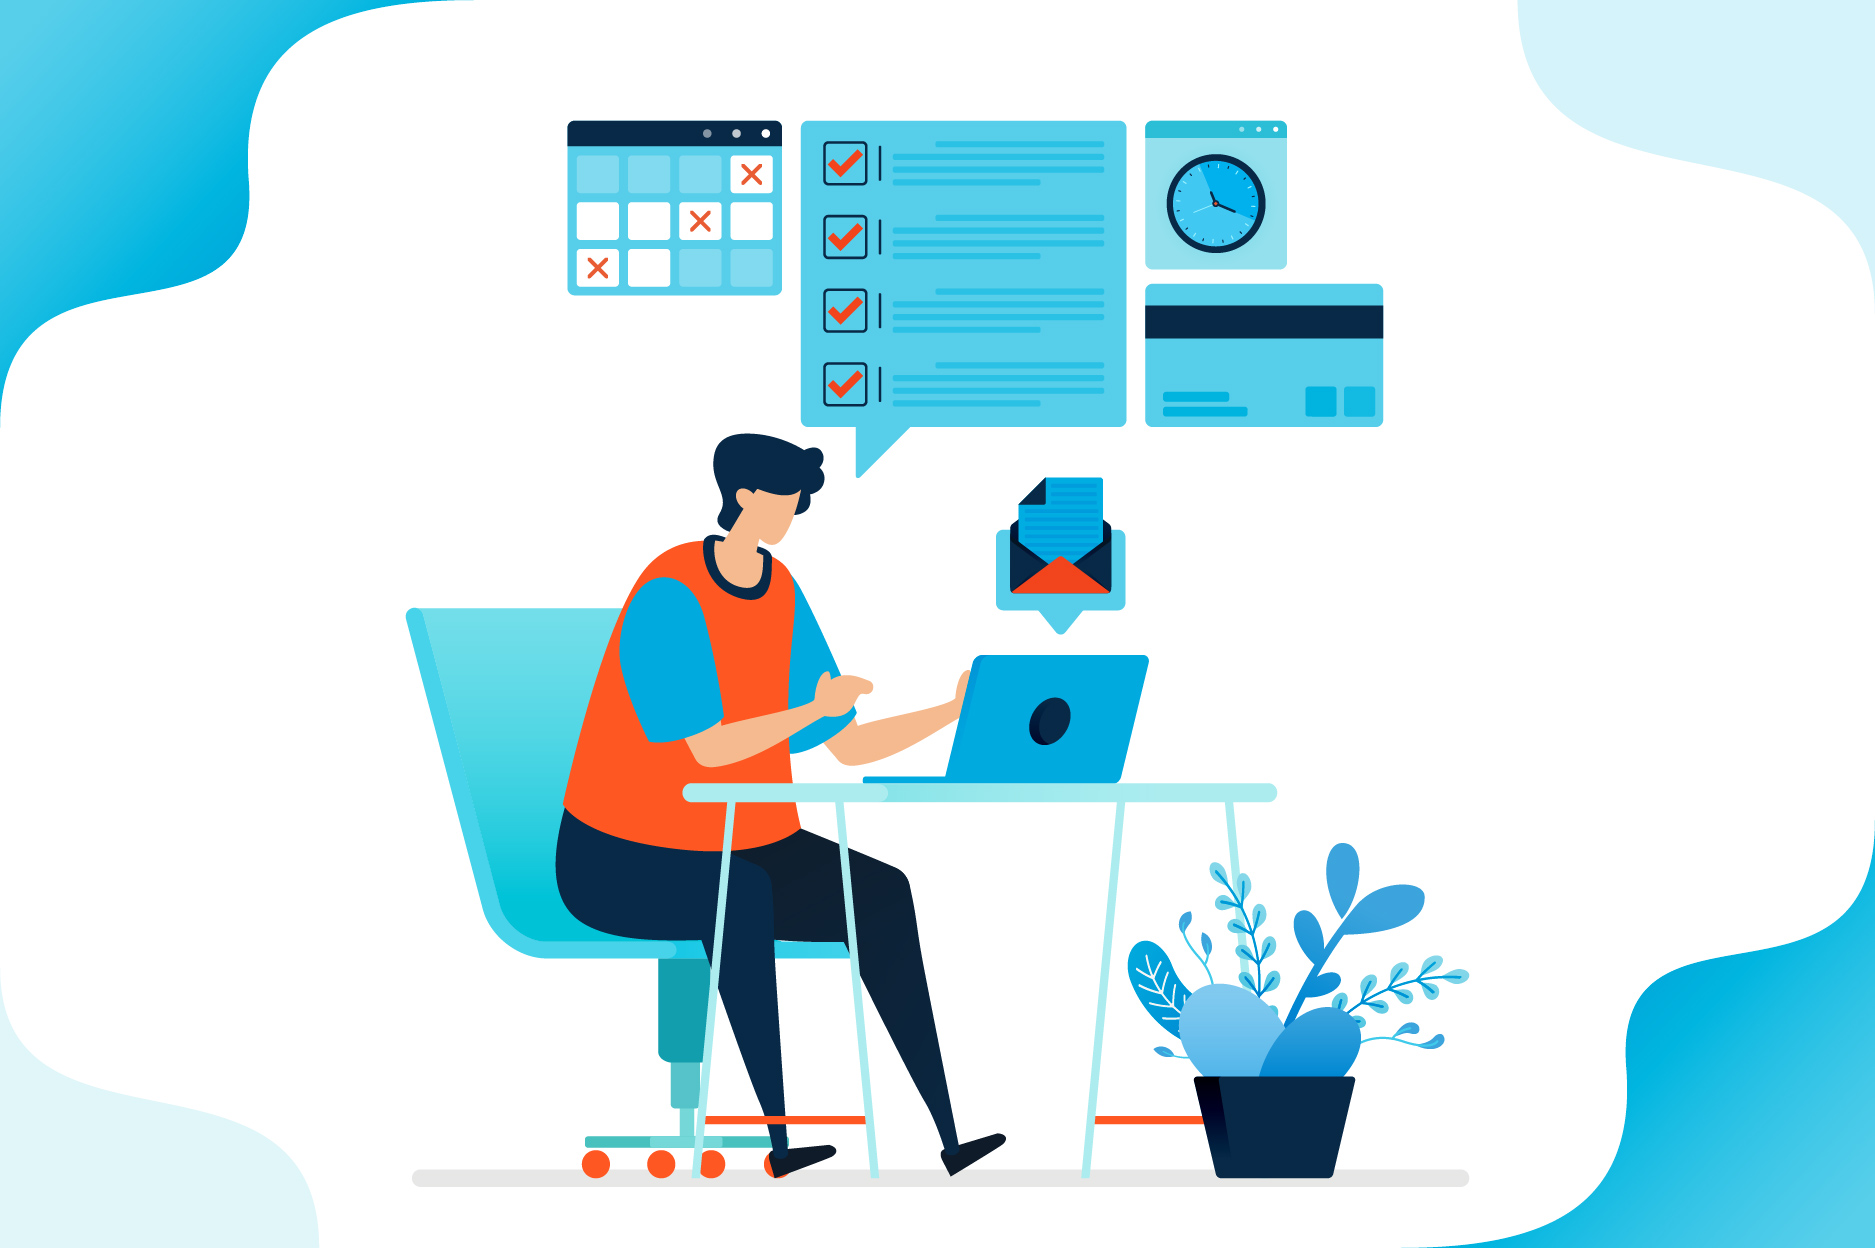 Download Free Illustration Of Man Working At Home Graphic By Setiawanarief111 for Cricut Explore, Silhouette and other cutting machines.